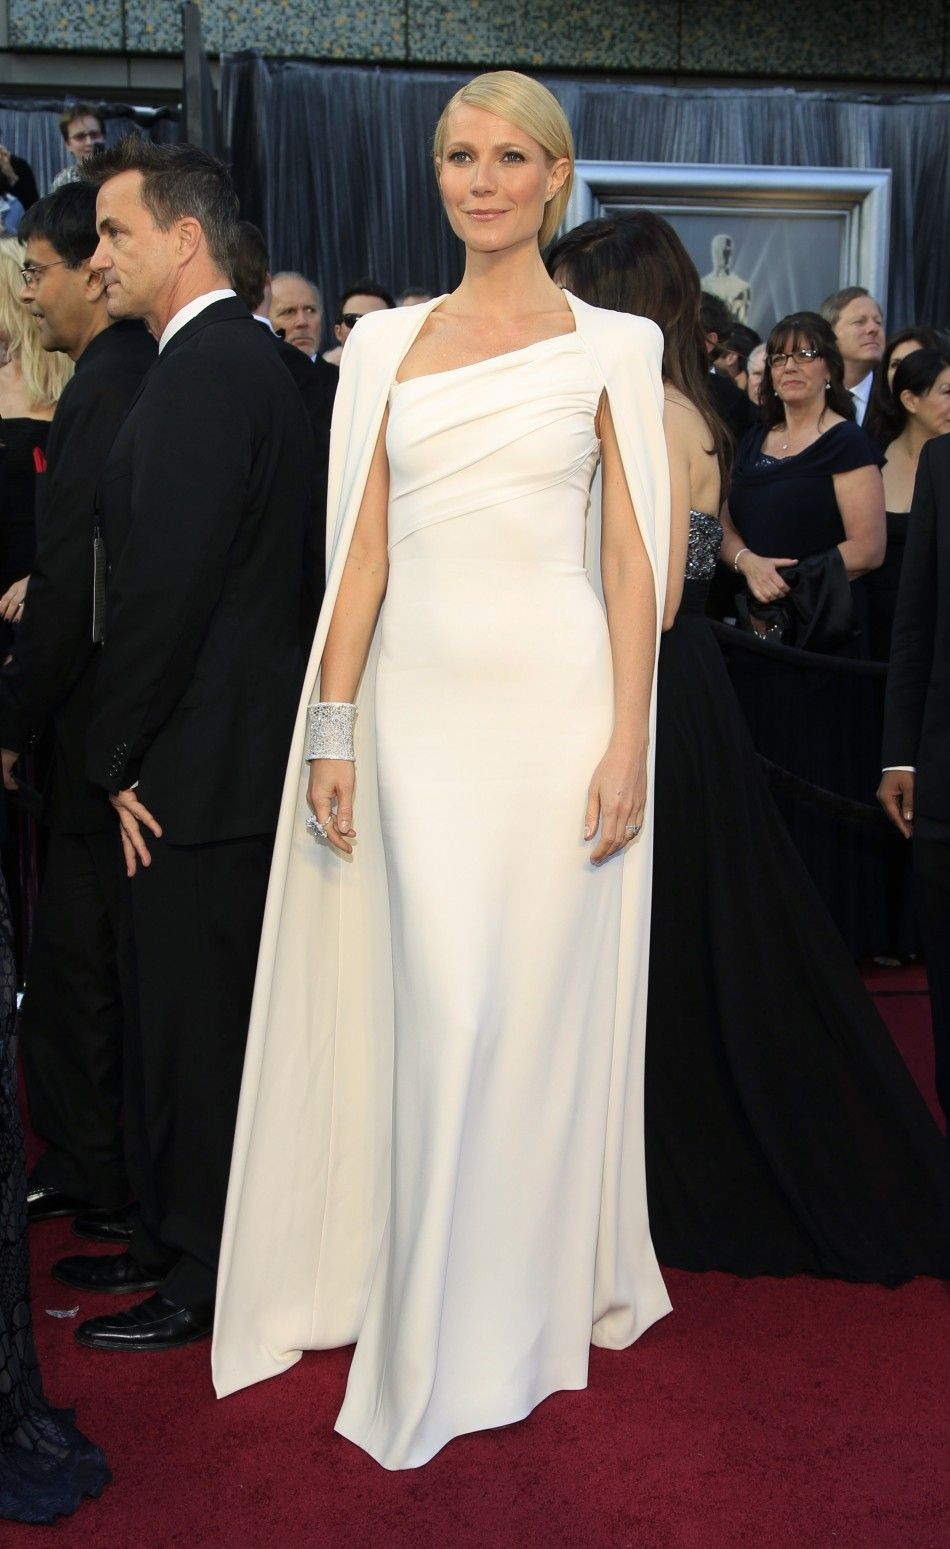 Discussion on this topic: Gwyneth Paltrow opens up about her Oscars , gwyneth-paltrow-opens-up-about-her-oscars/